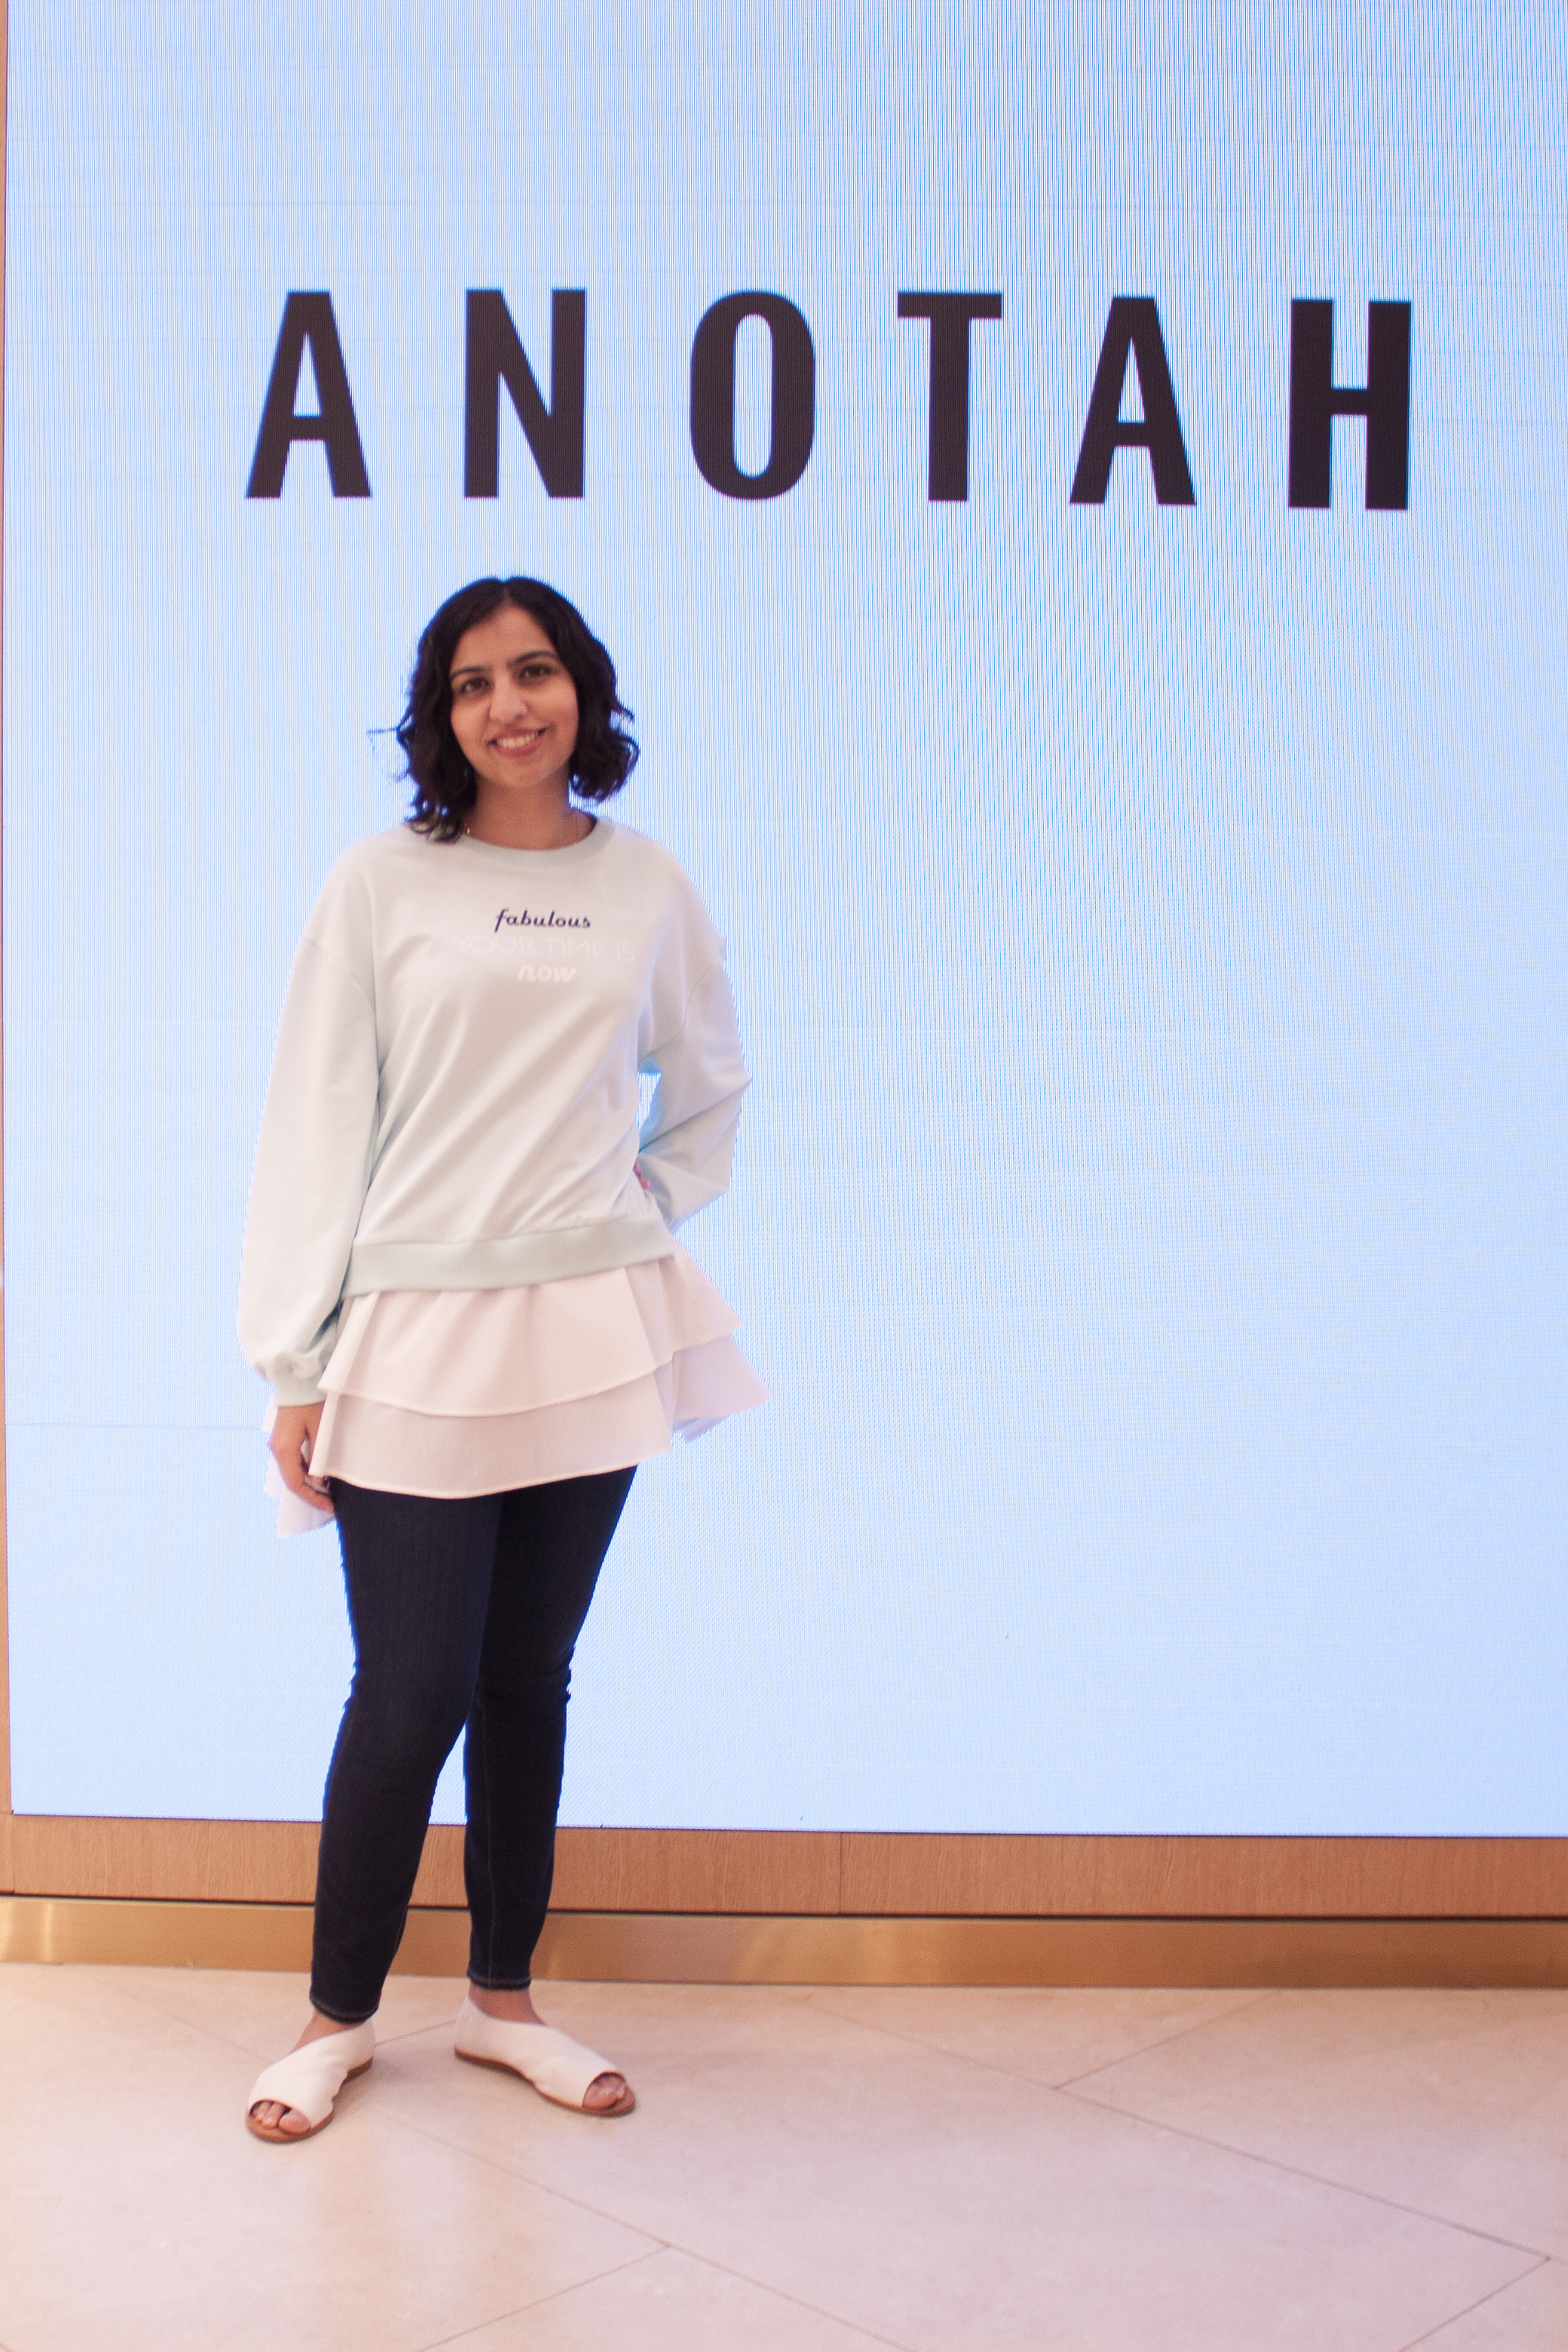 Anotah boutique visit fabulous sweatshirt